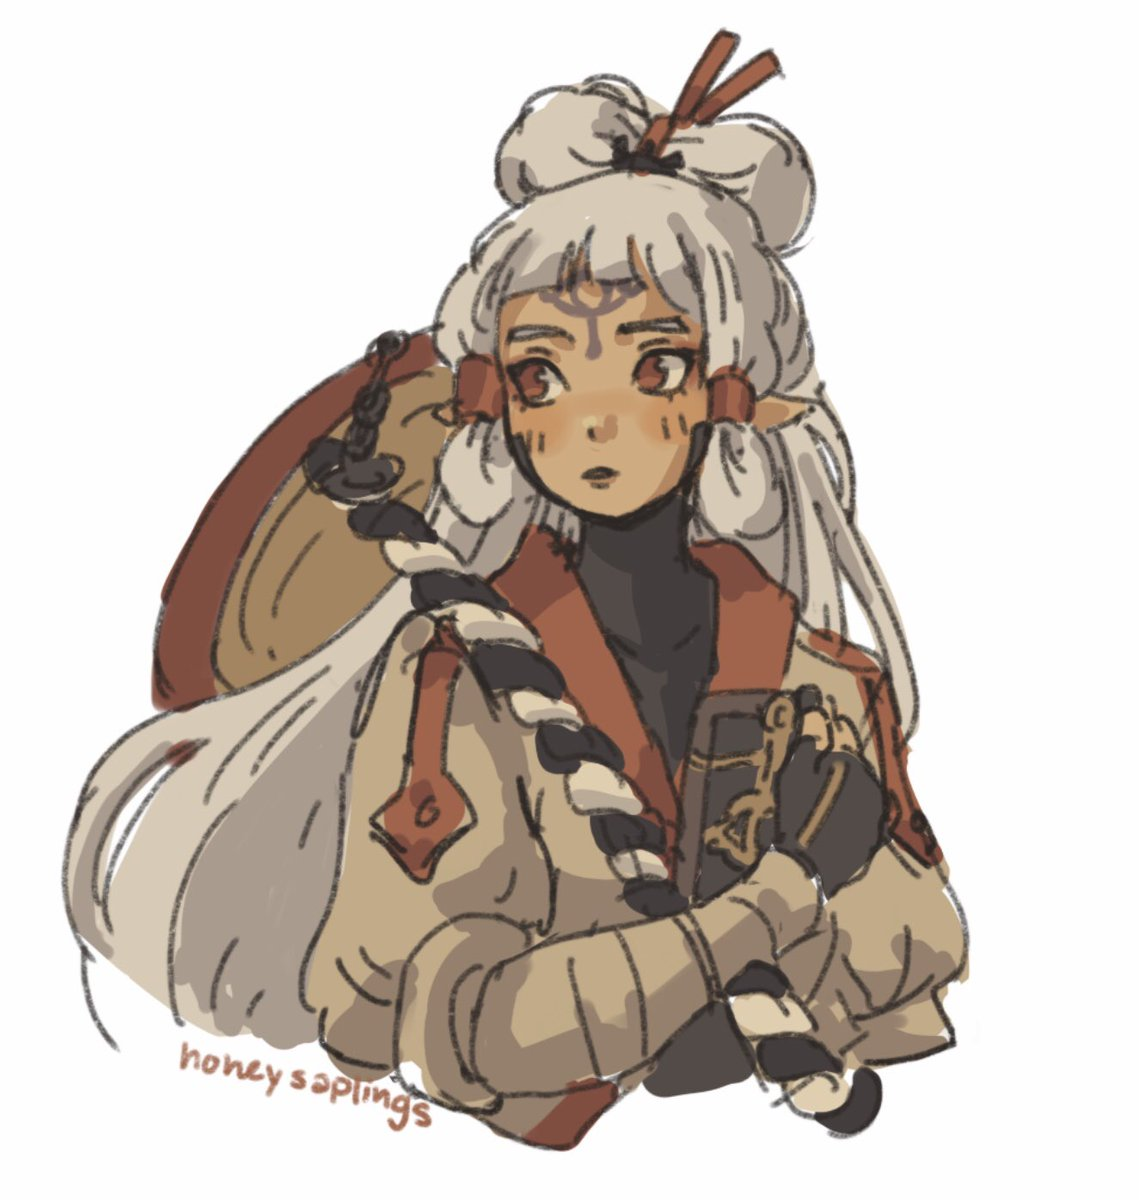 lady impa i have feelings for you https://t.co/YQjP807zMk